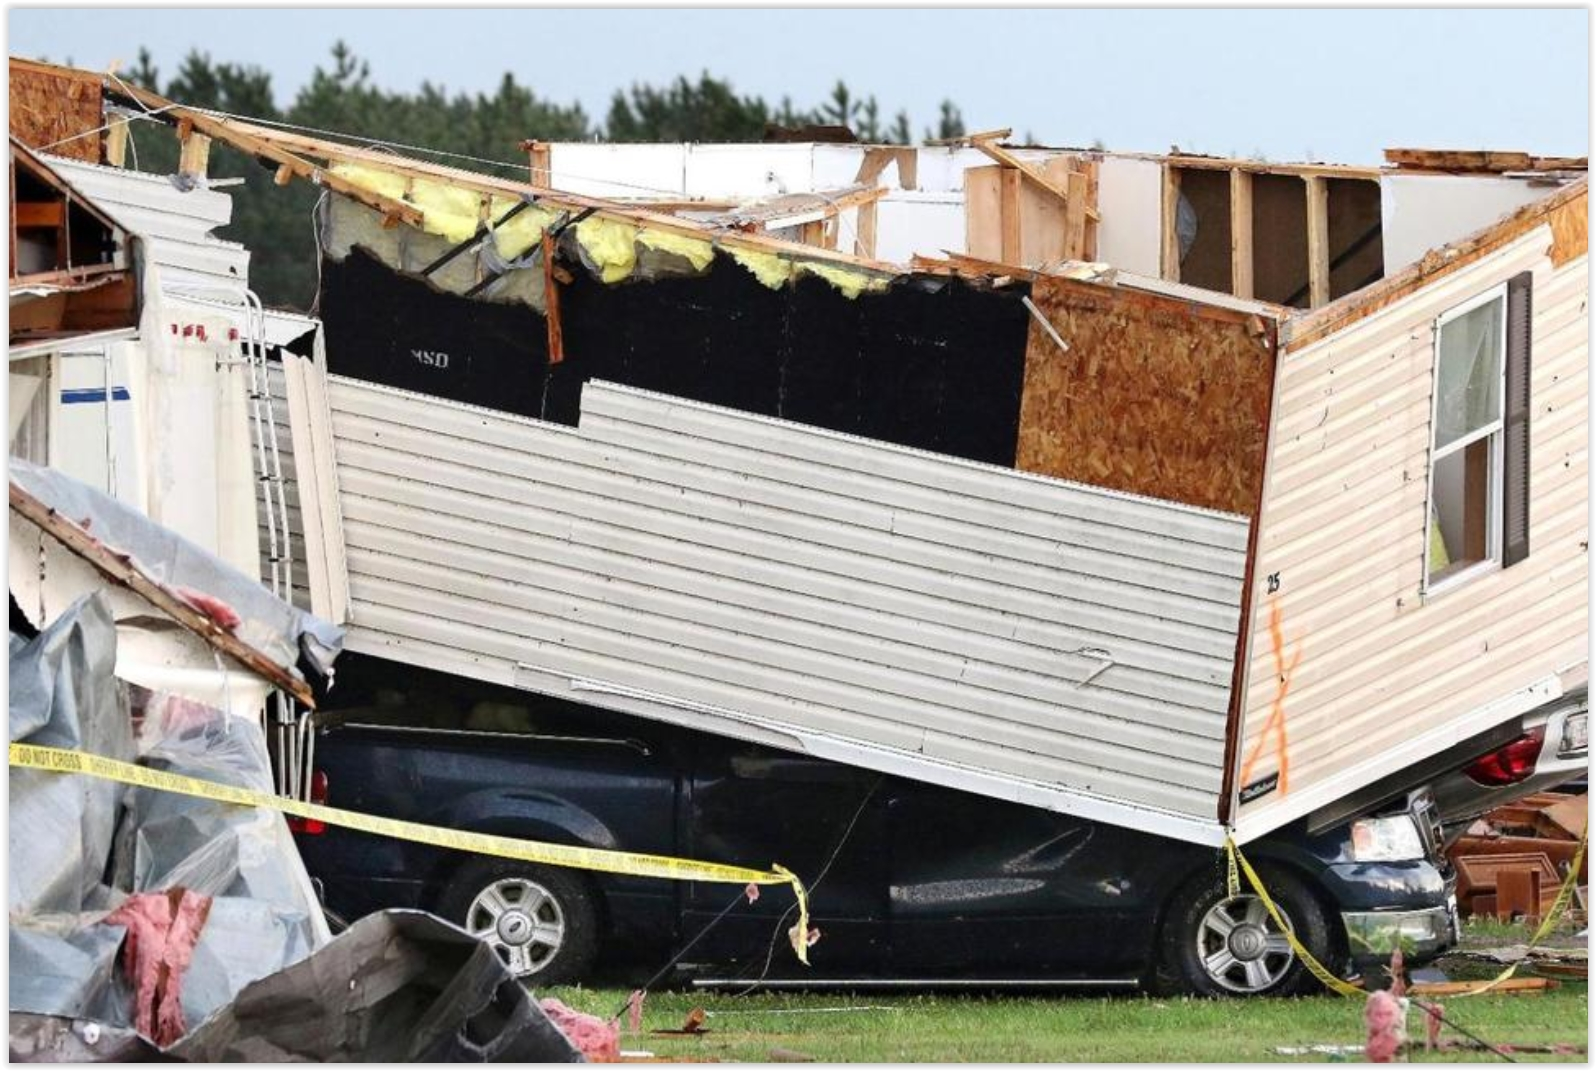 Heres A Clip From US News Update The Red Cross Says Dozens Of People Who Lost Their Homes When Tornado Leveled Trailer Park